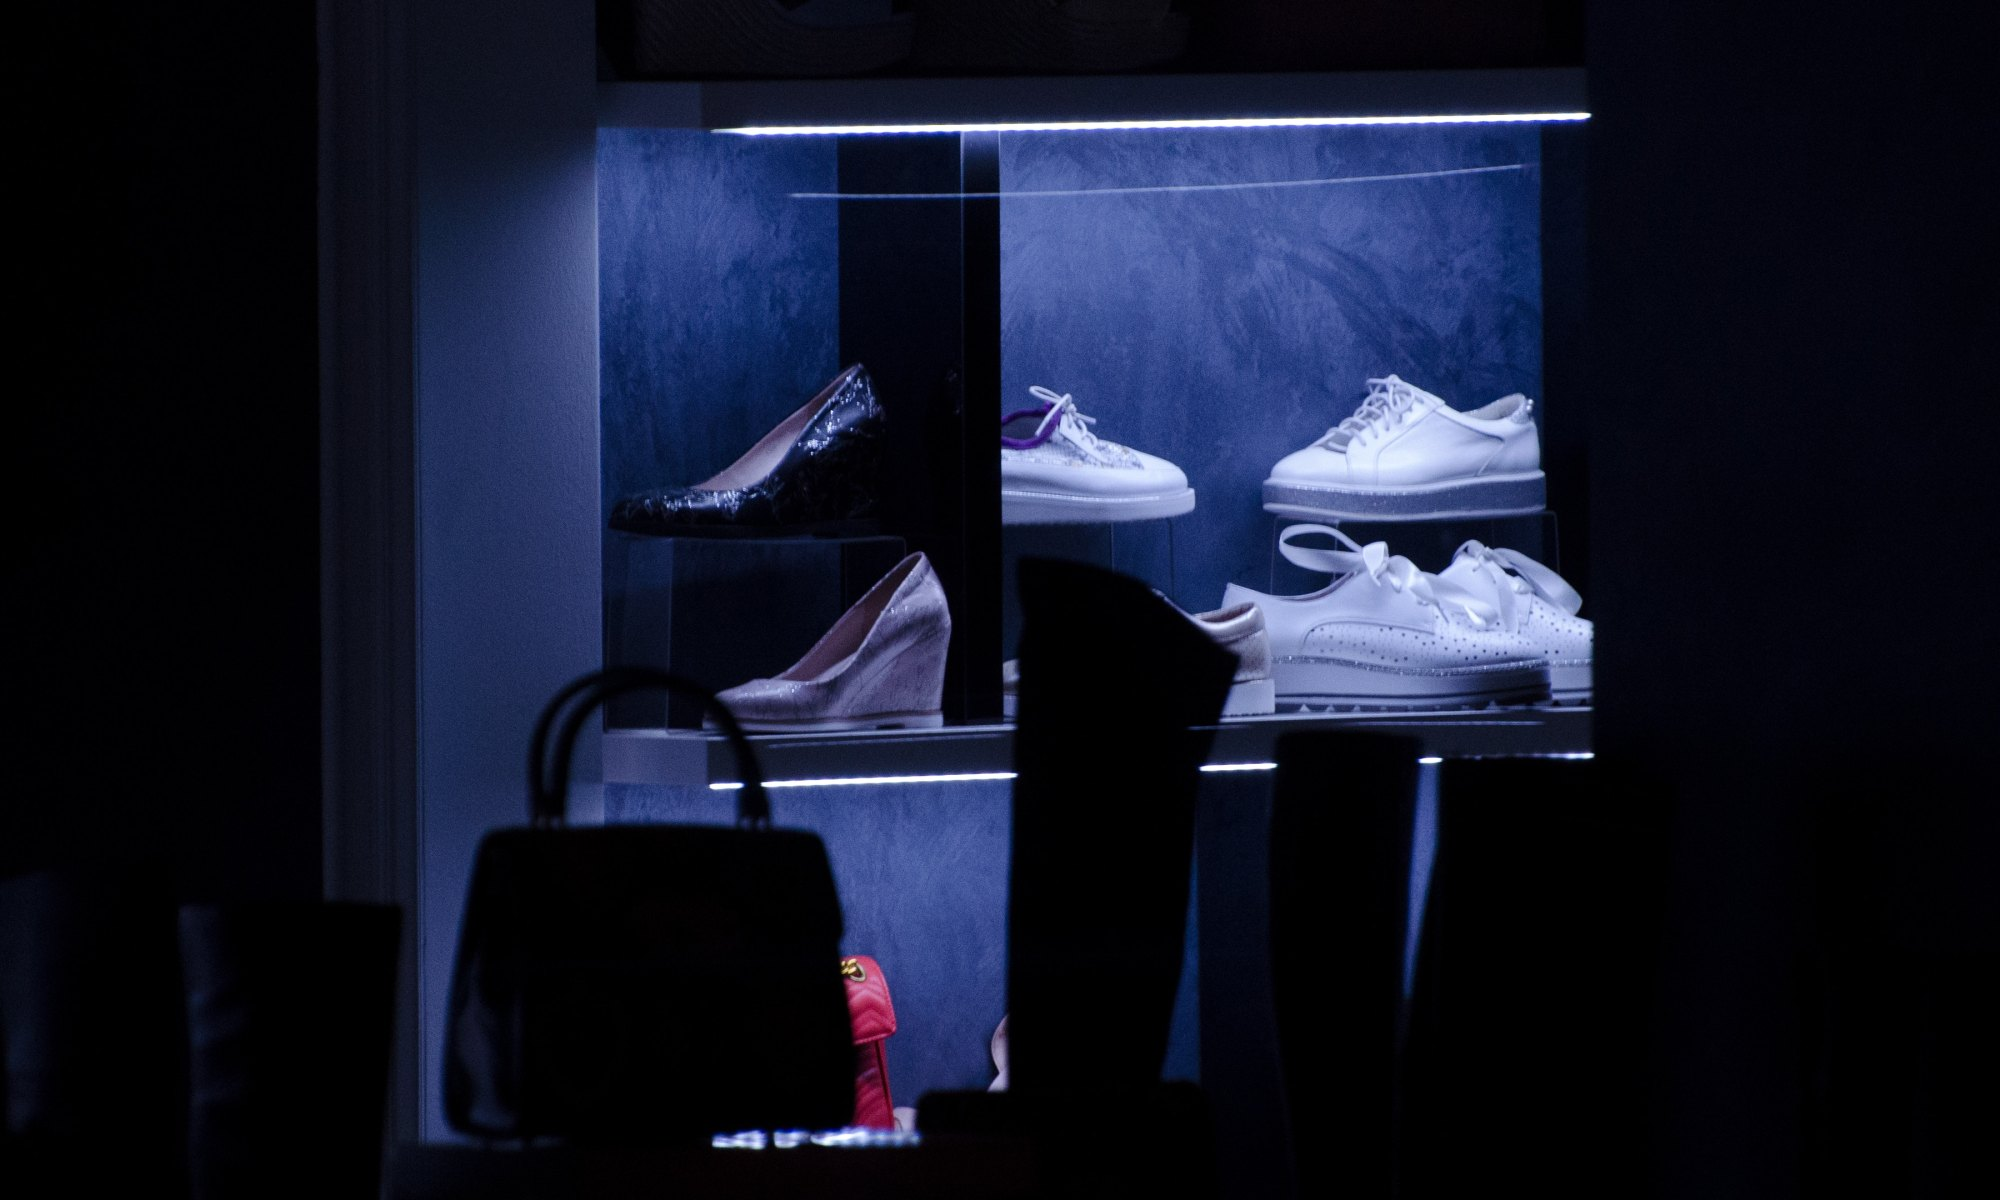 Compulsive buying of shoes and bags in a lit display collection inside a dark room